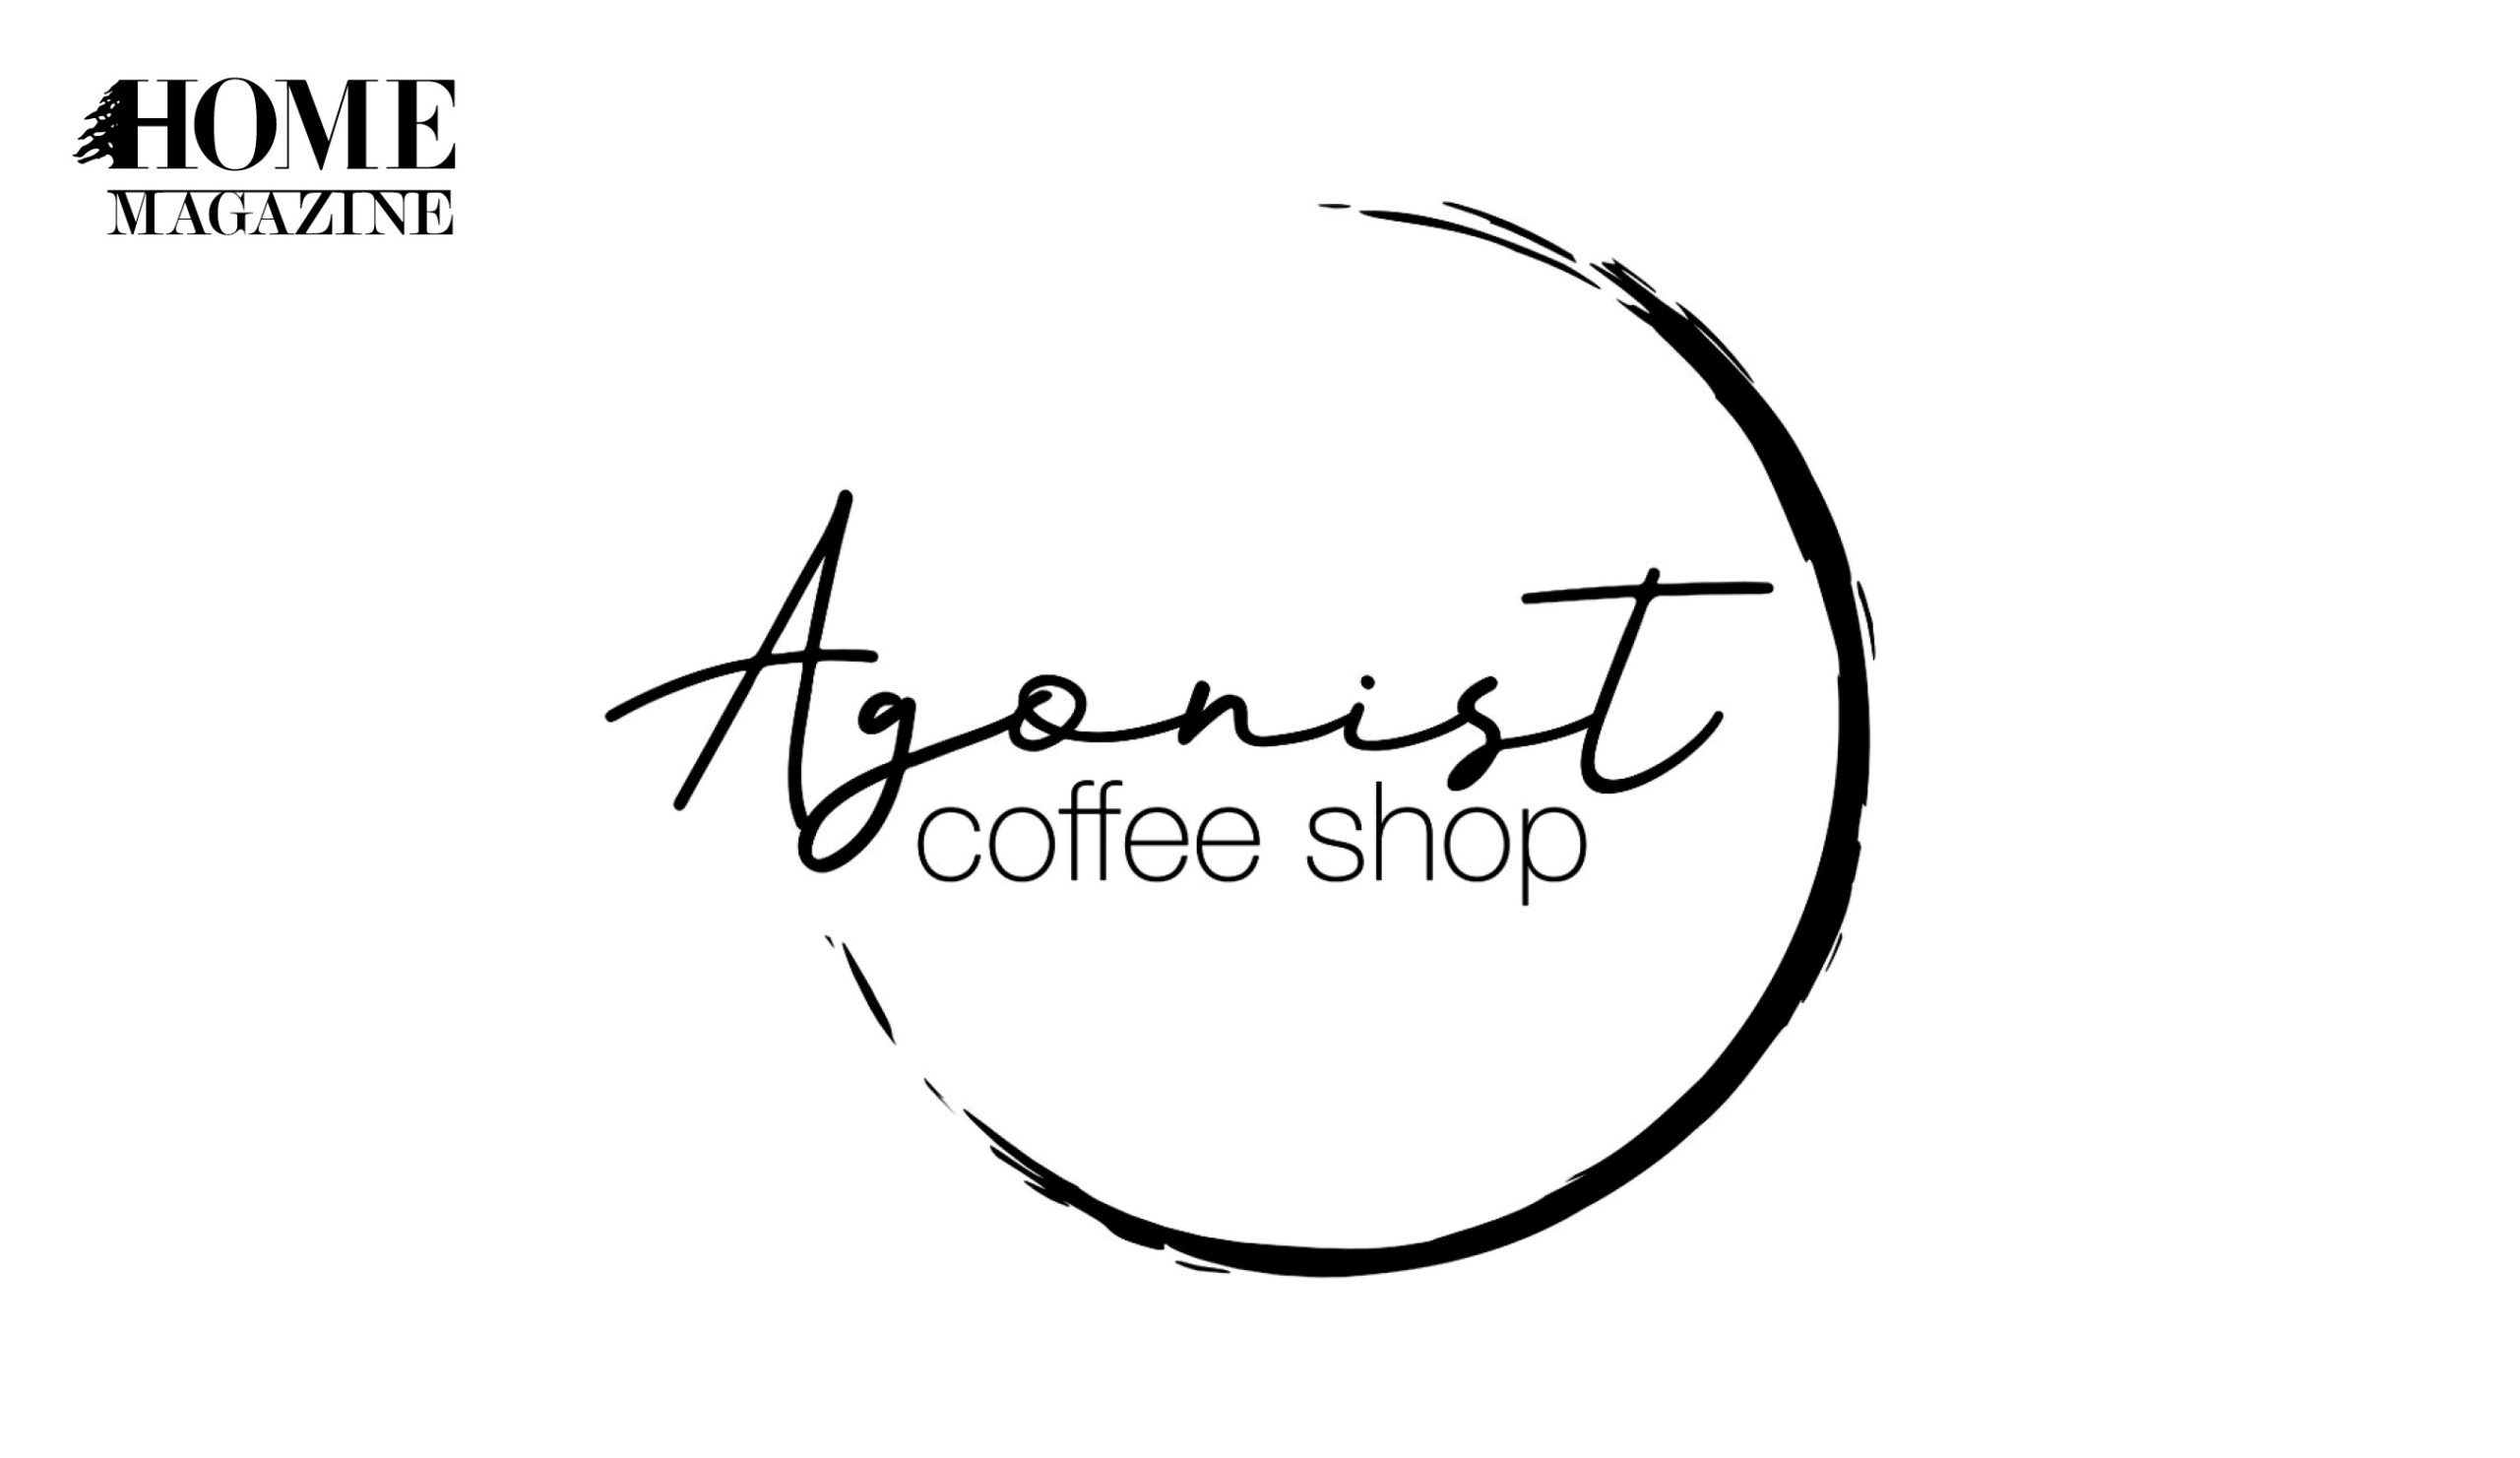 Agonist Coffee Shop: Coffee With Heart